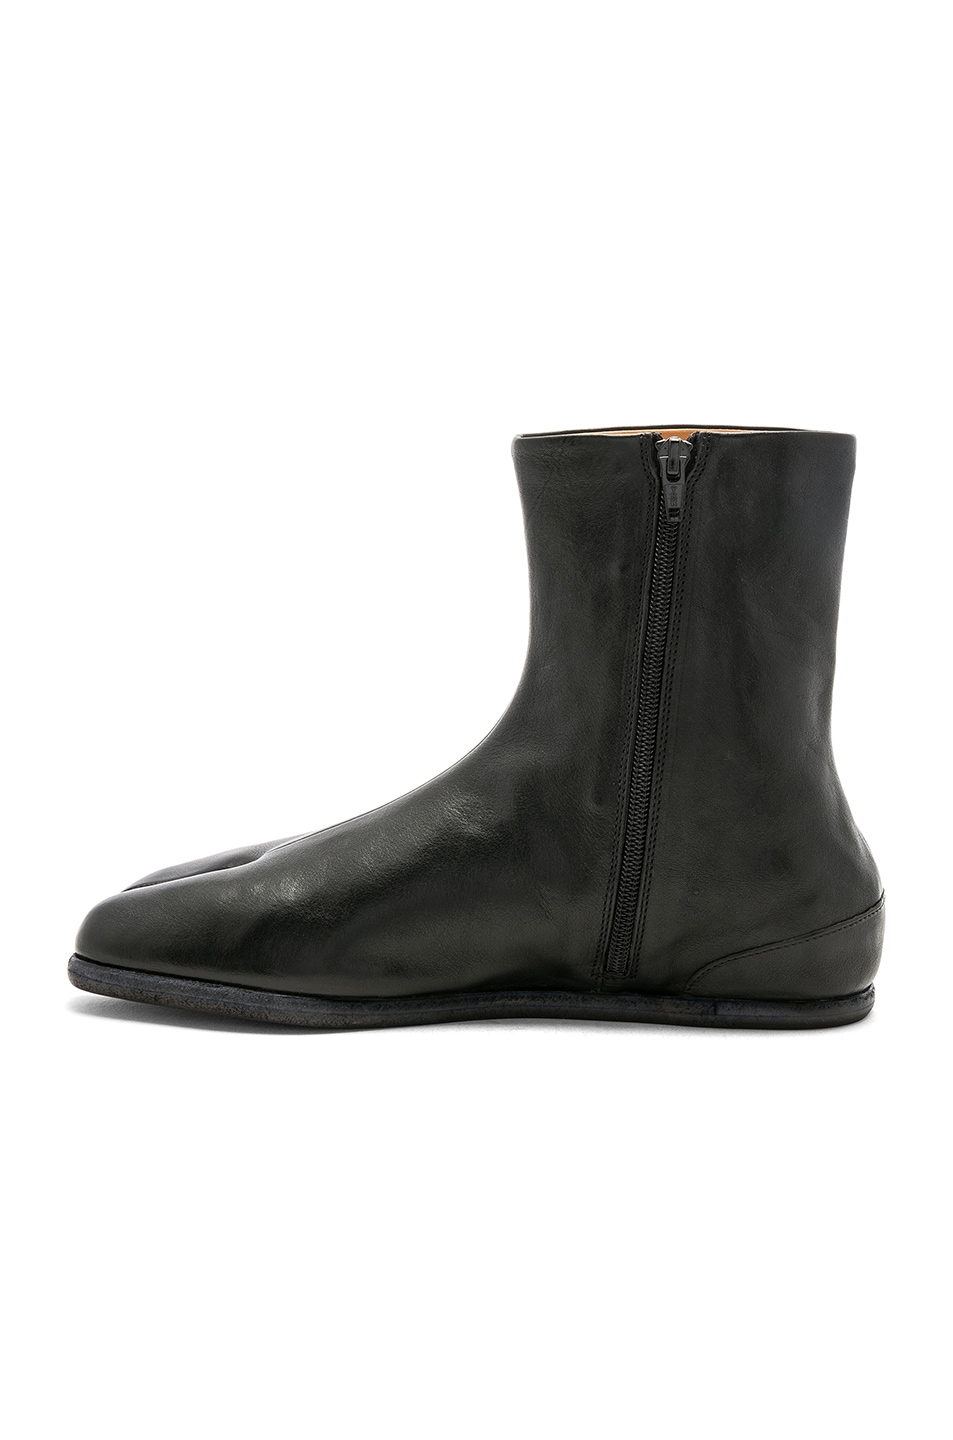 Image 5 of Maison Margiela Leather Tabi Boots in Black